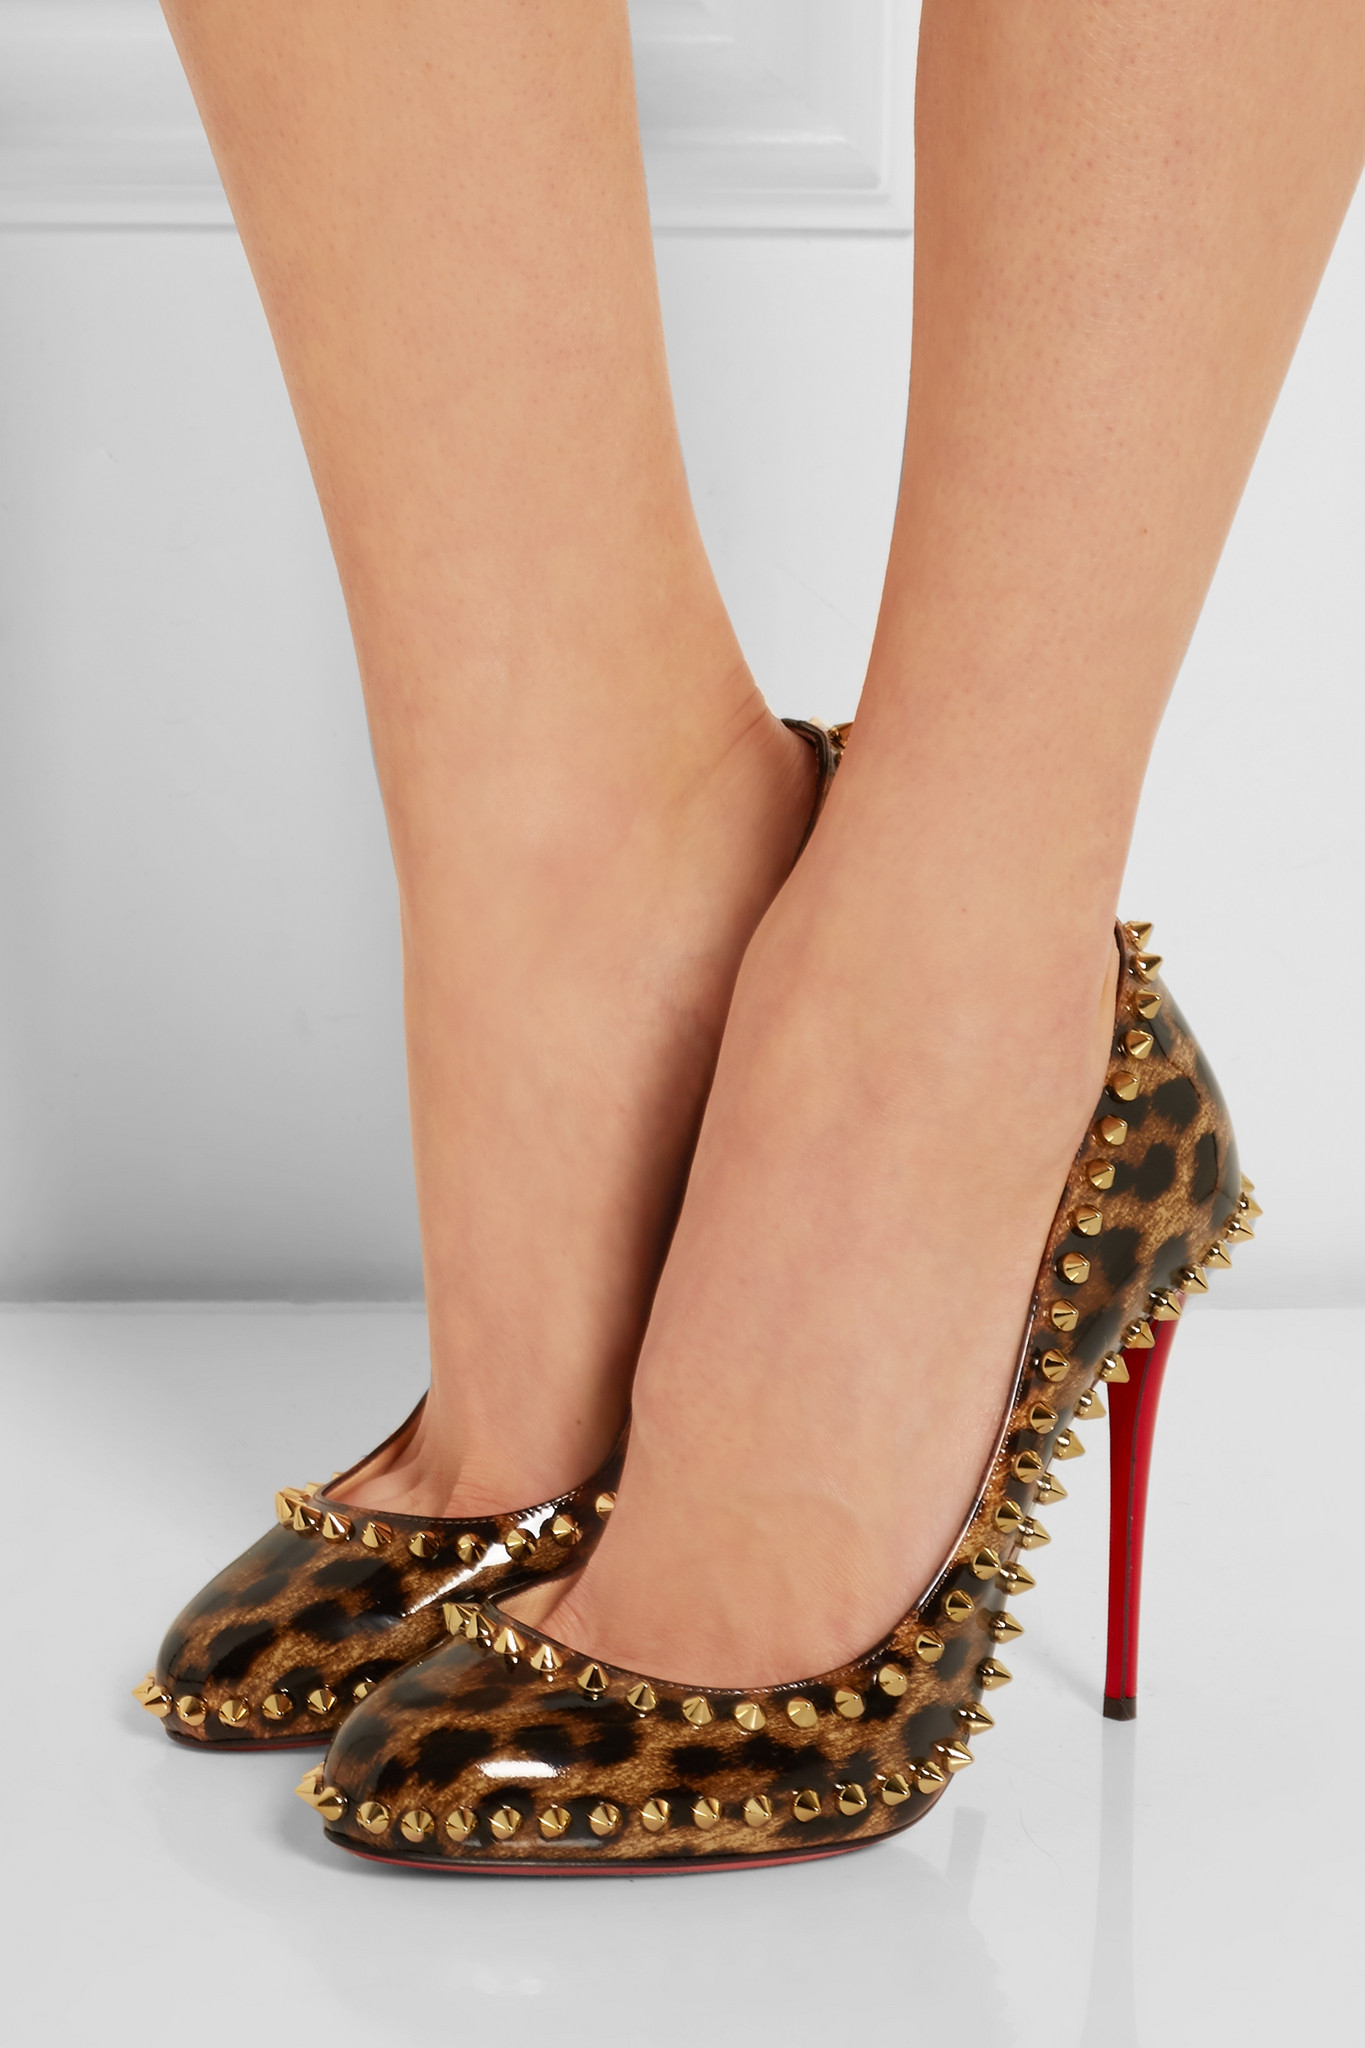 db0a8422afa Christian Louboutin Black Dorispiky 100 Studded Leopard-print  Patent-leather Pumps